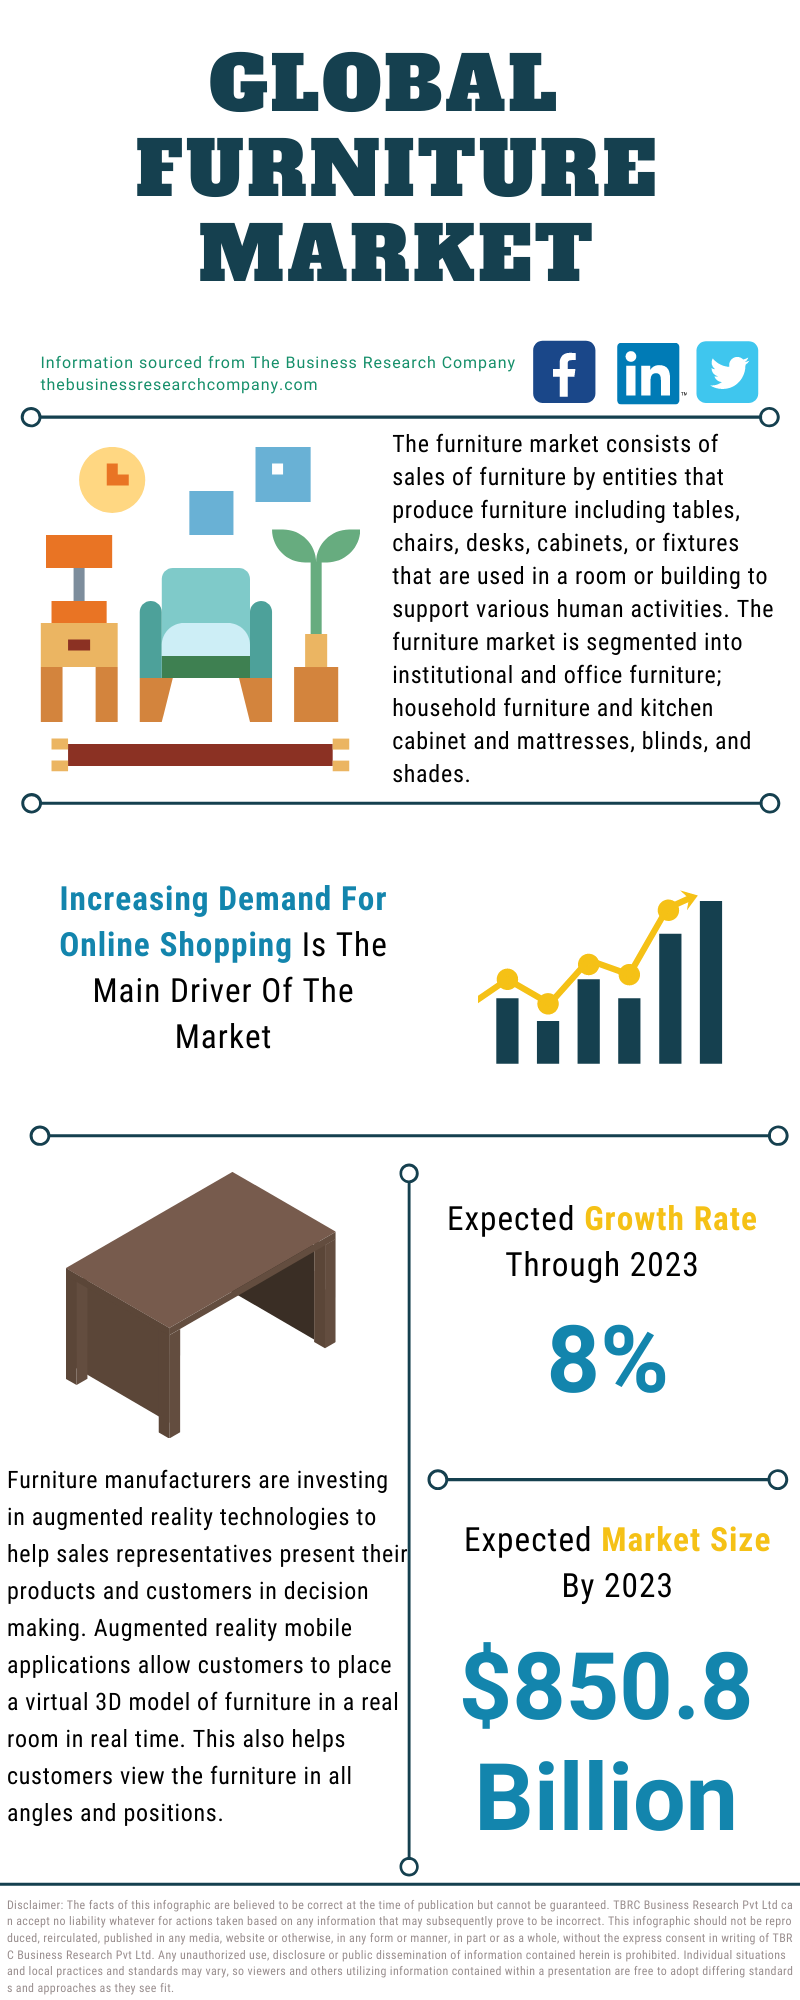 Global Furniture Market Data And Industry Growth Analysis